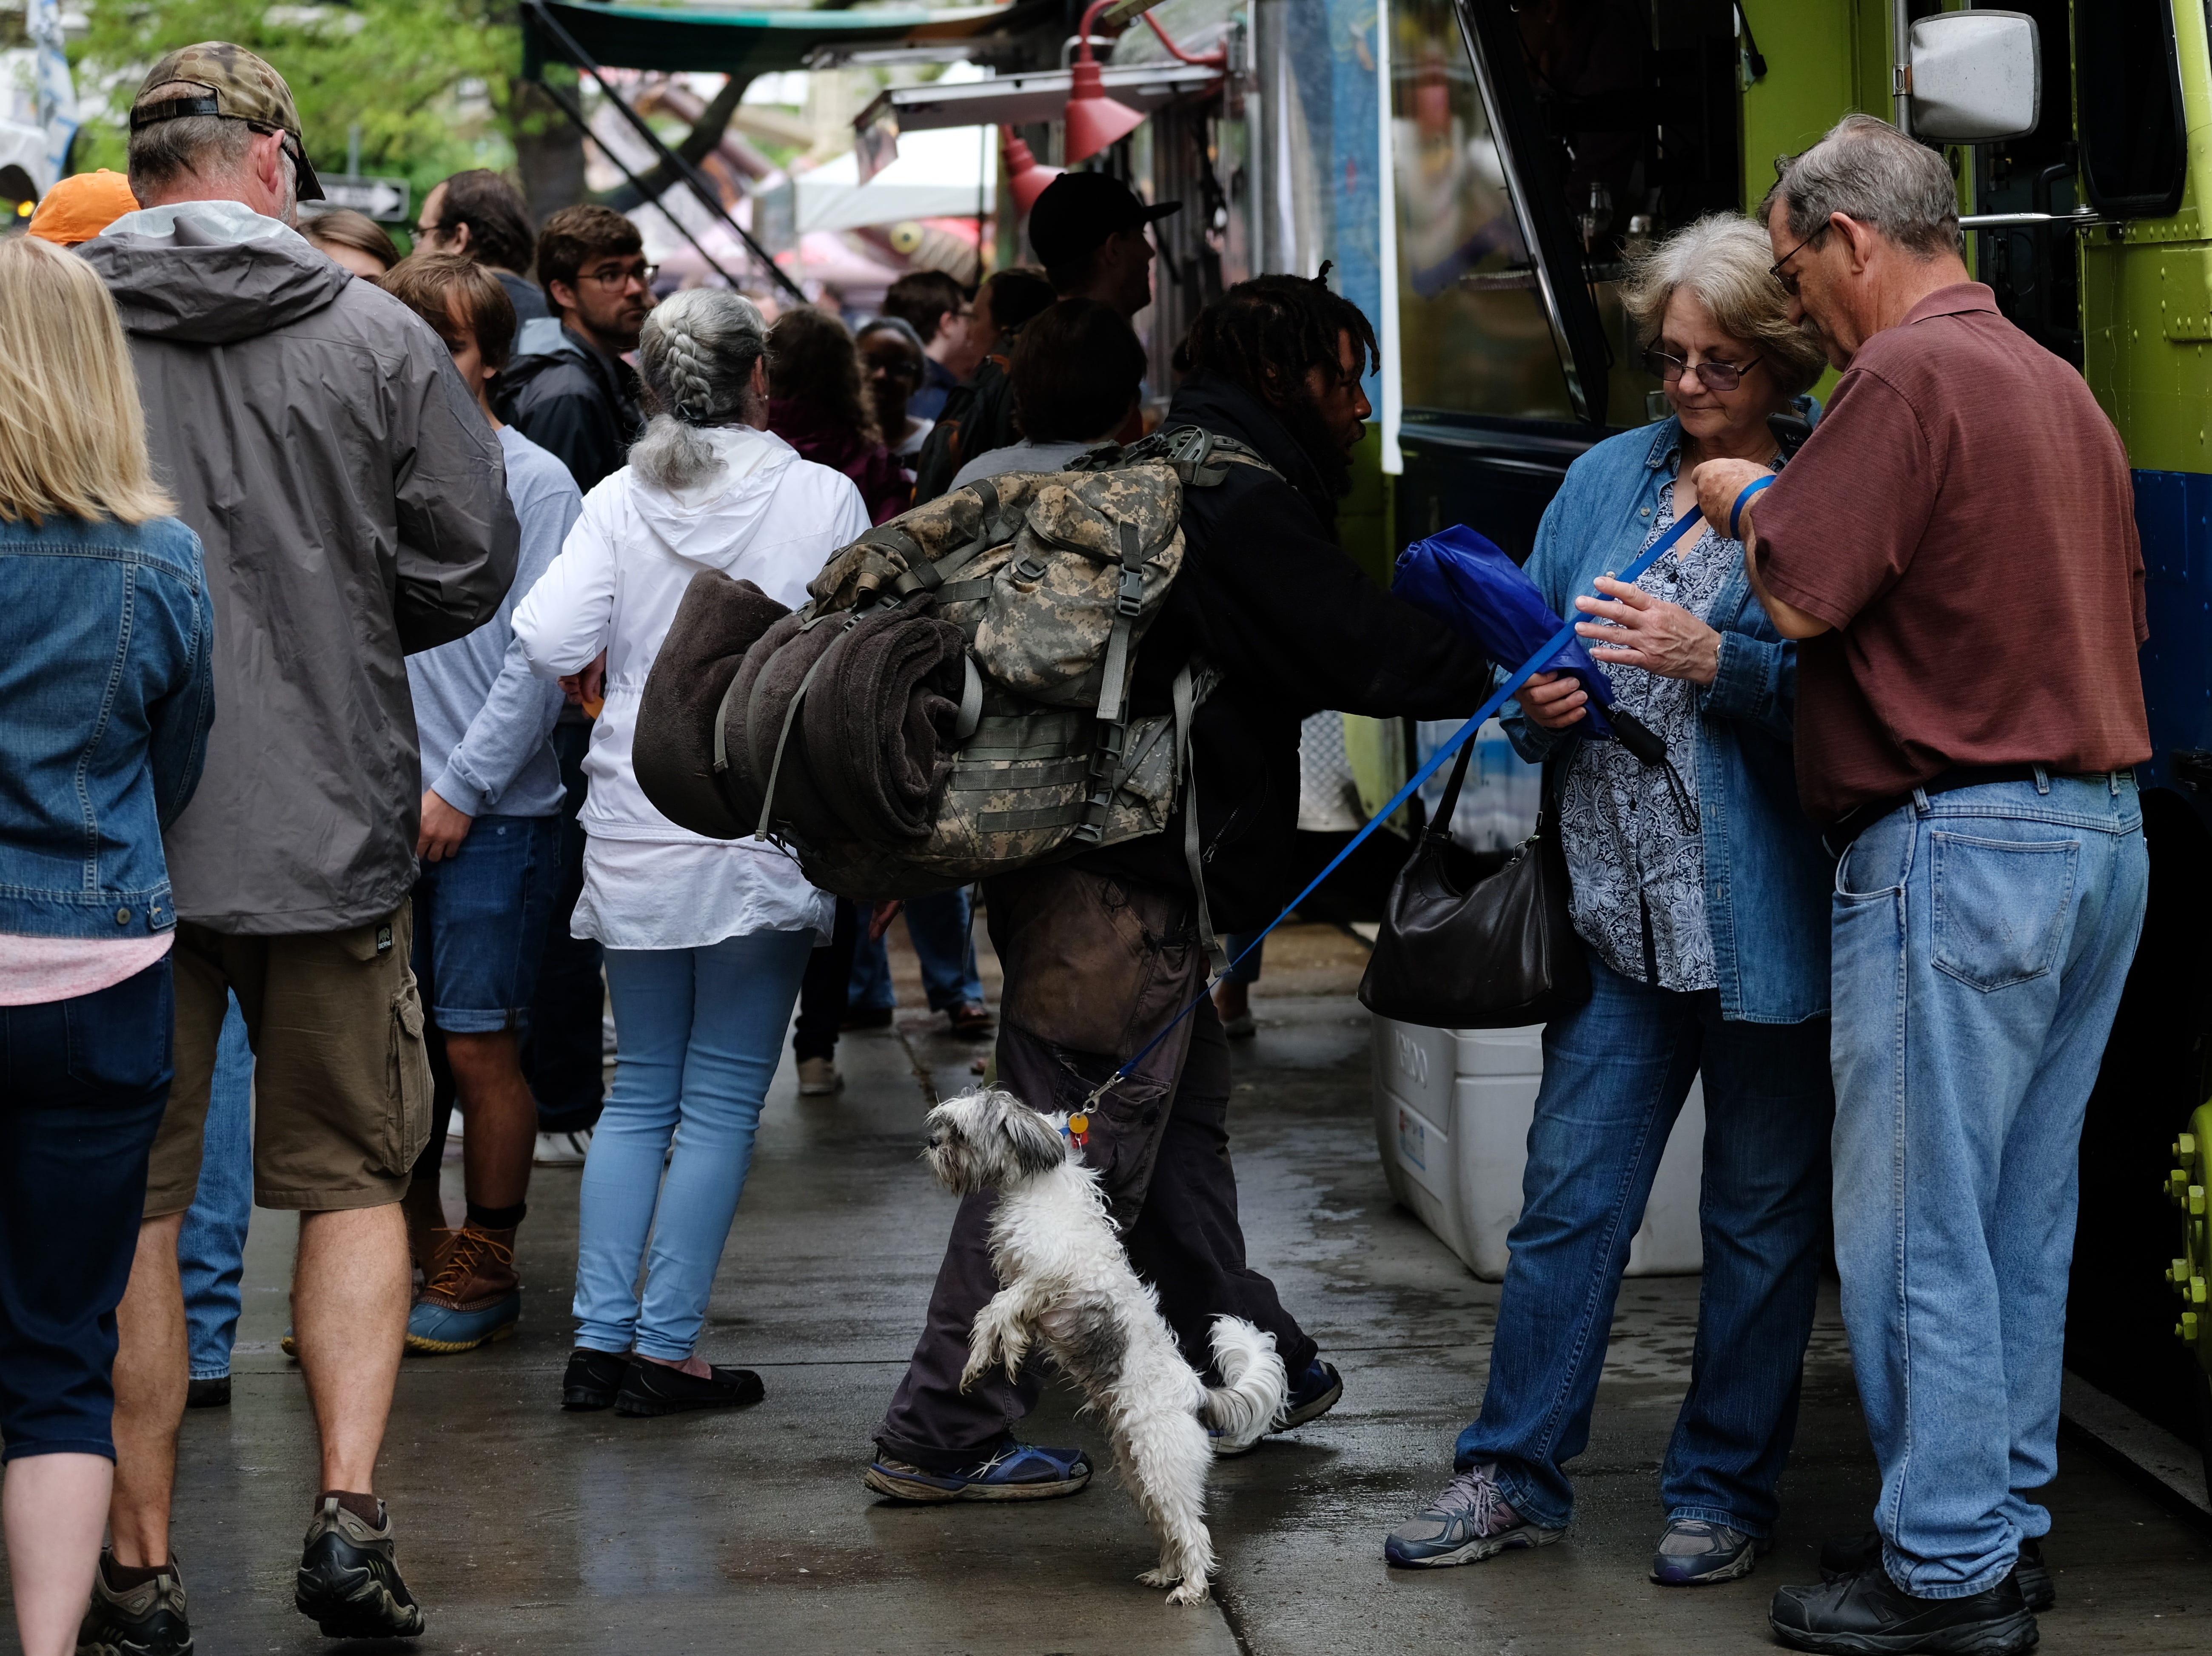 Festival goers Carol and Rich Tegethoff along with their dog Bentley take a break during the Rossini Festival in Knoxville on Saturday, April 13, 2019. (Shawn Millsaps/Special to News Sentinel)